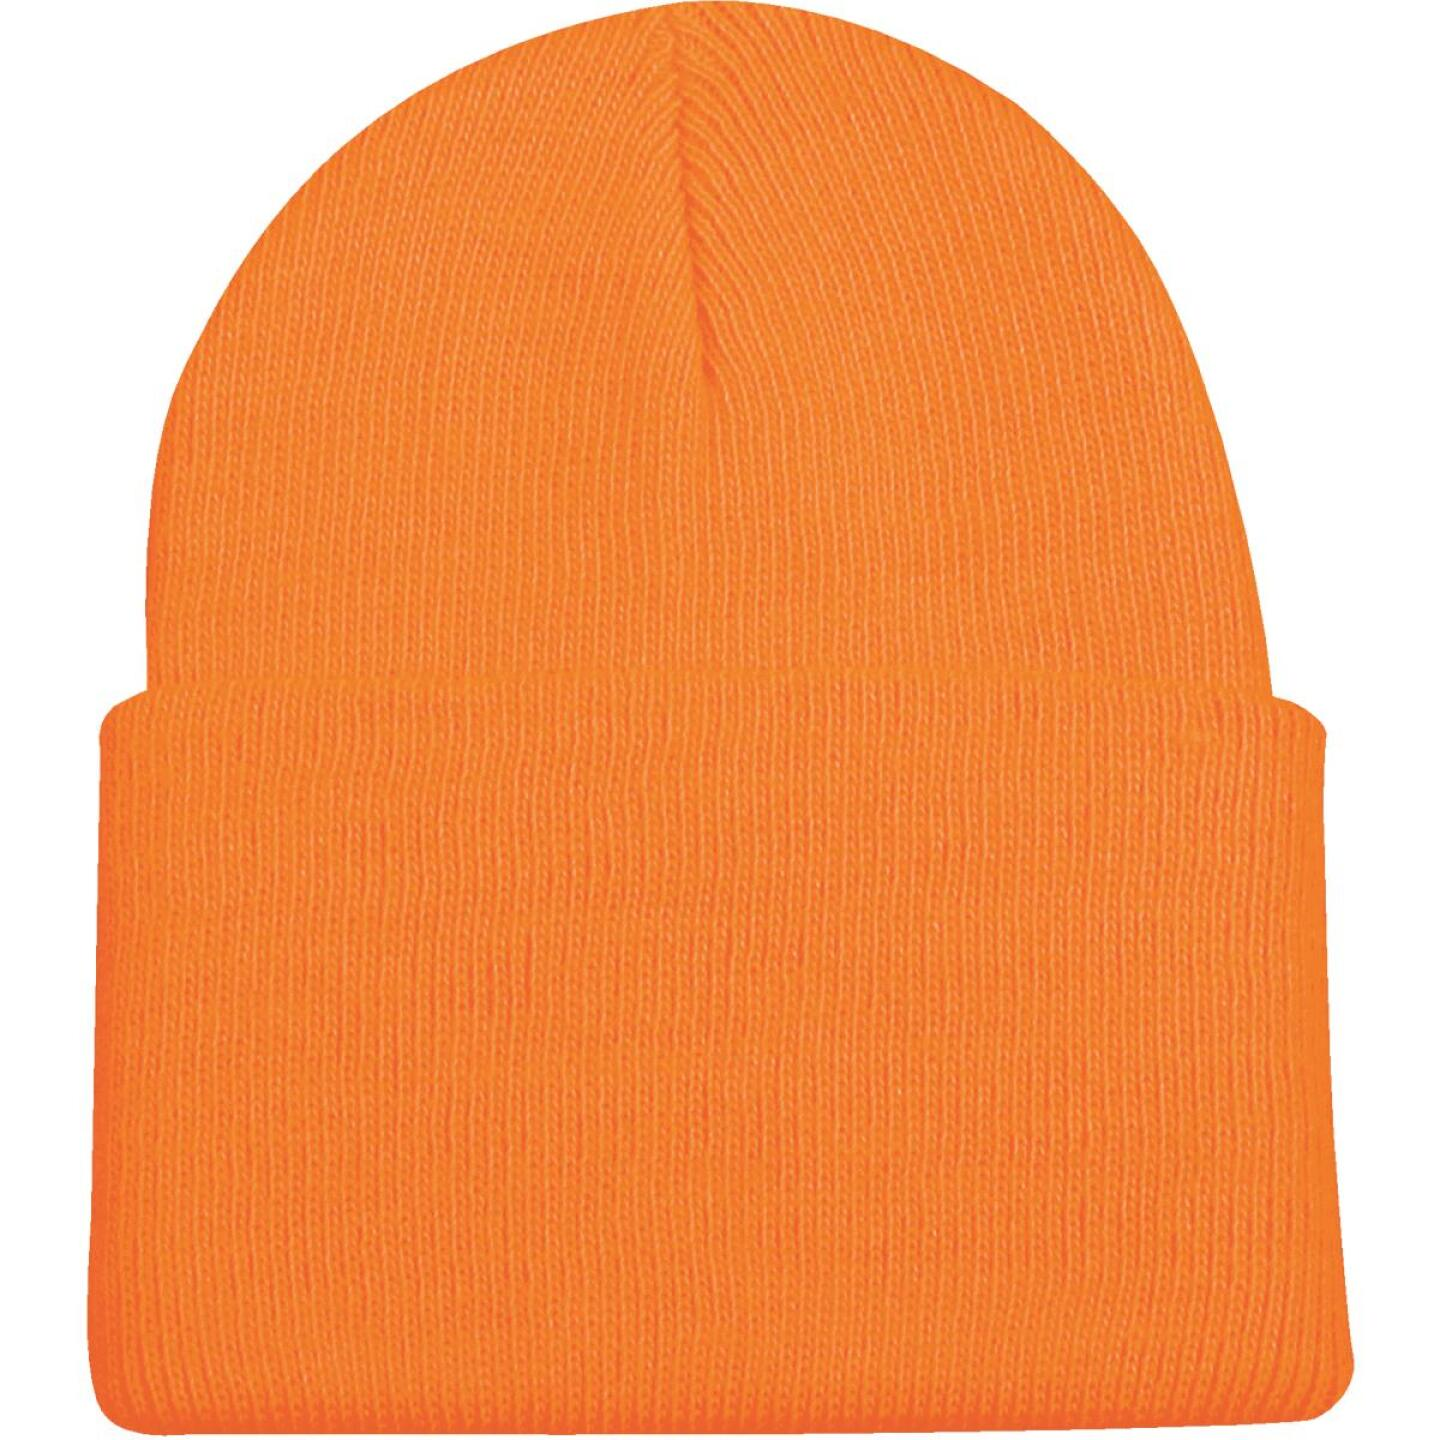 Outdoor Cap Blaze Orange Cuffed Sock Cap Image 1